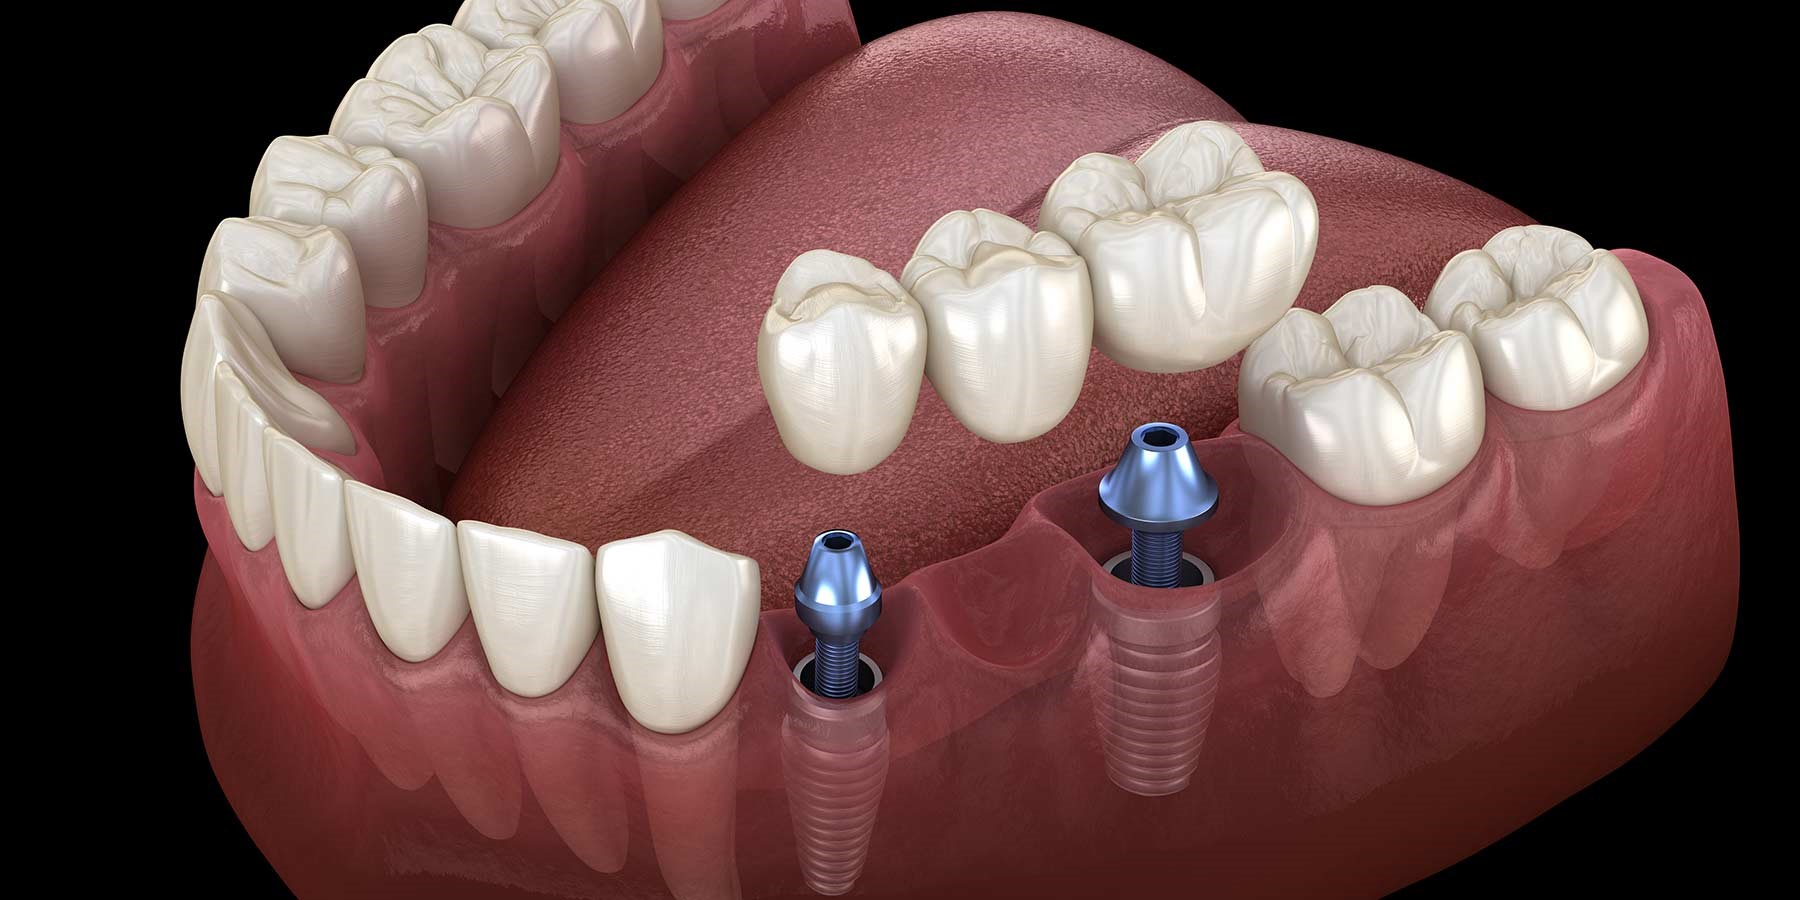 Dental Implant Surgery (Implantes Dentales): Things You Should Know